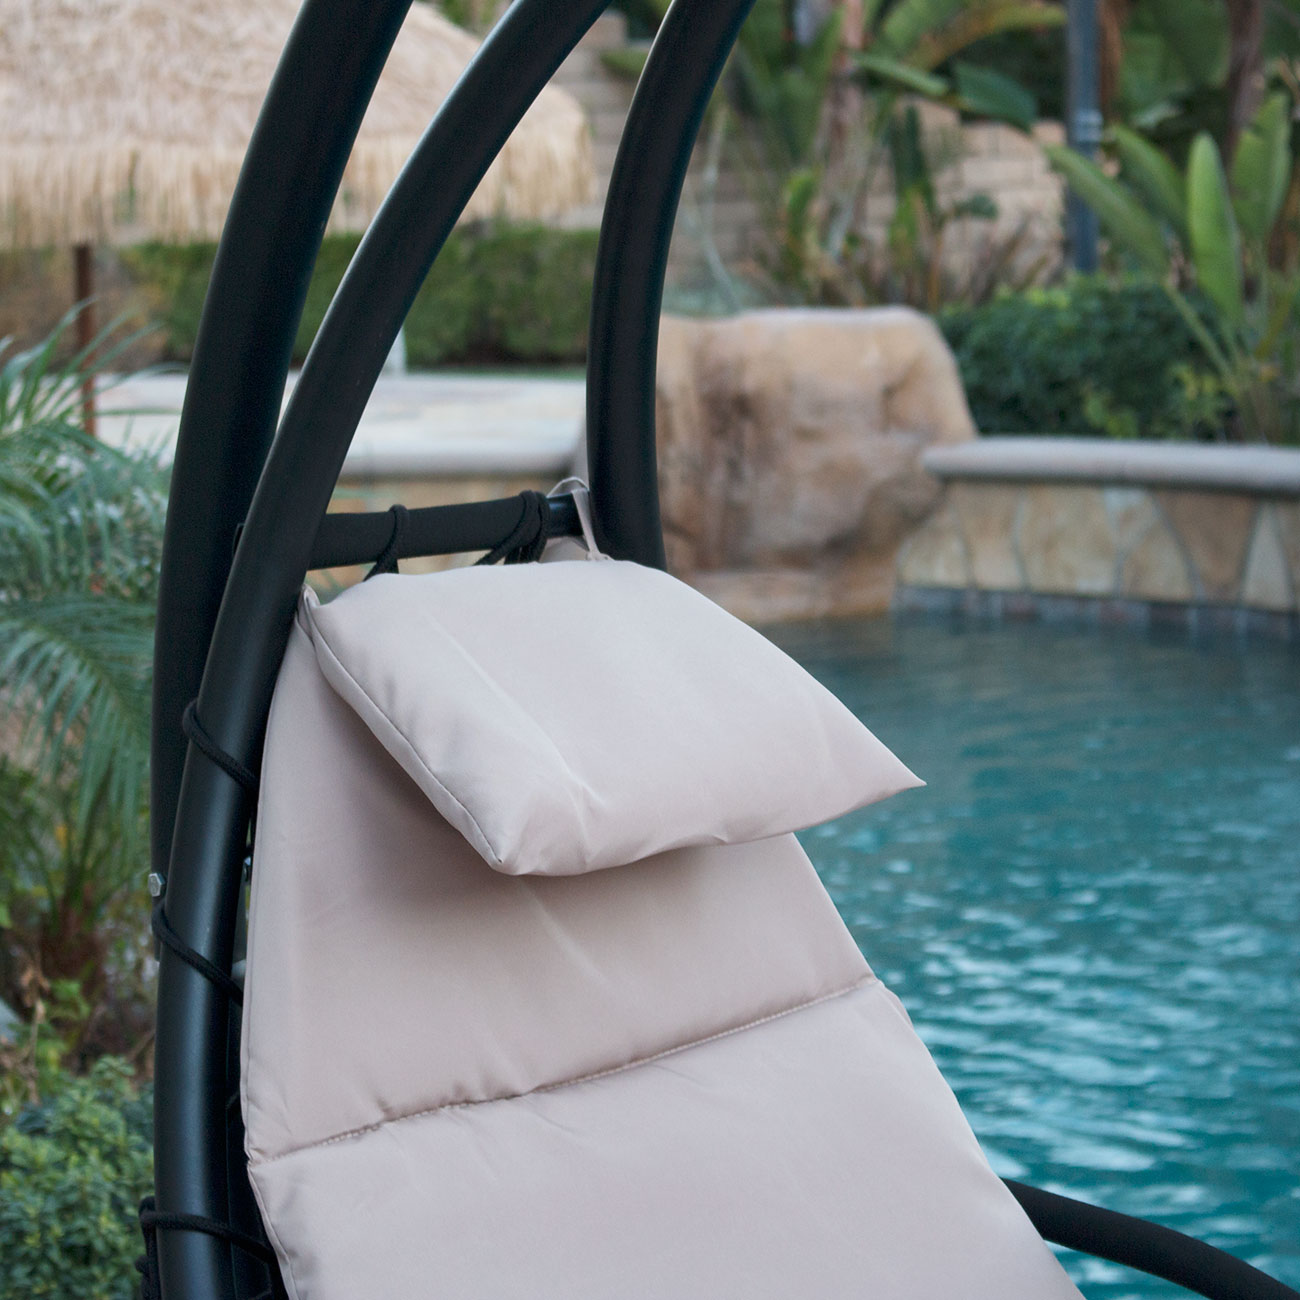 Hanging Helicopter dream Lounger Chair Arc Stand Swing ... on Hanging Helicopter Dream Lounger Chair id=28749